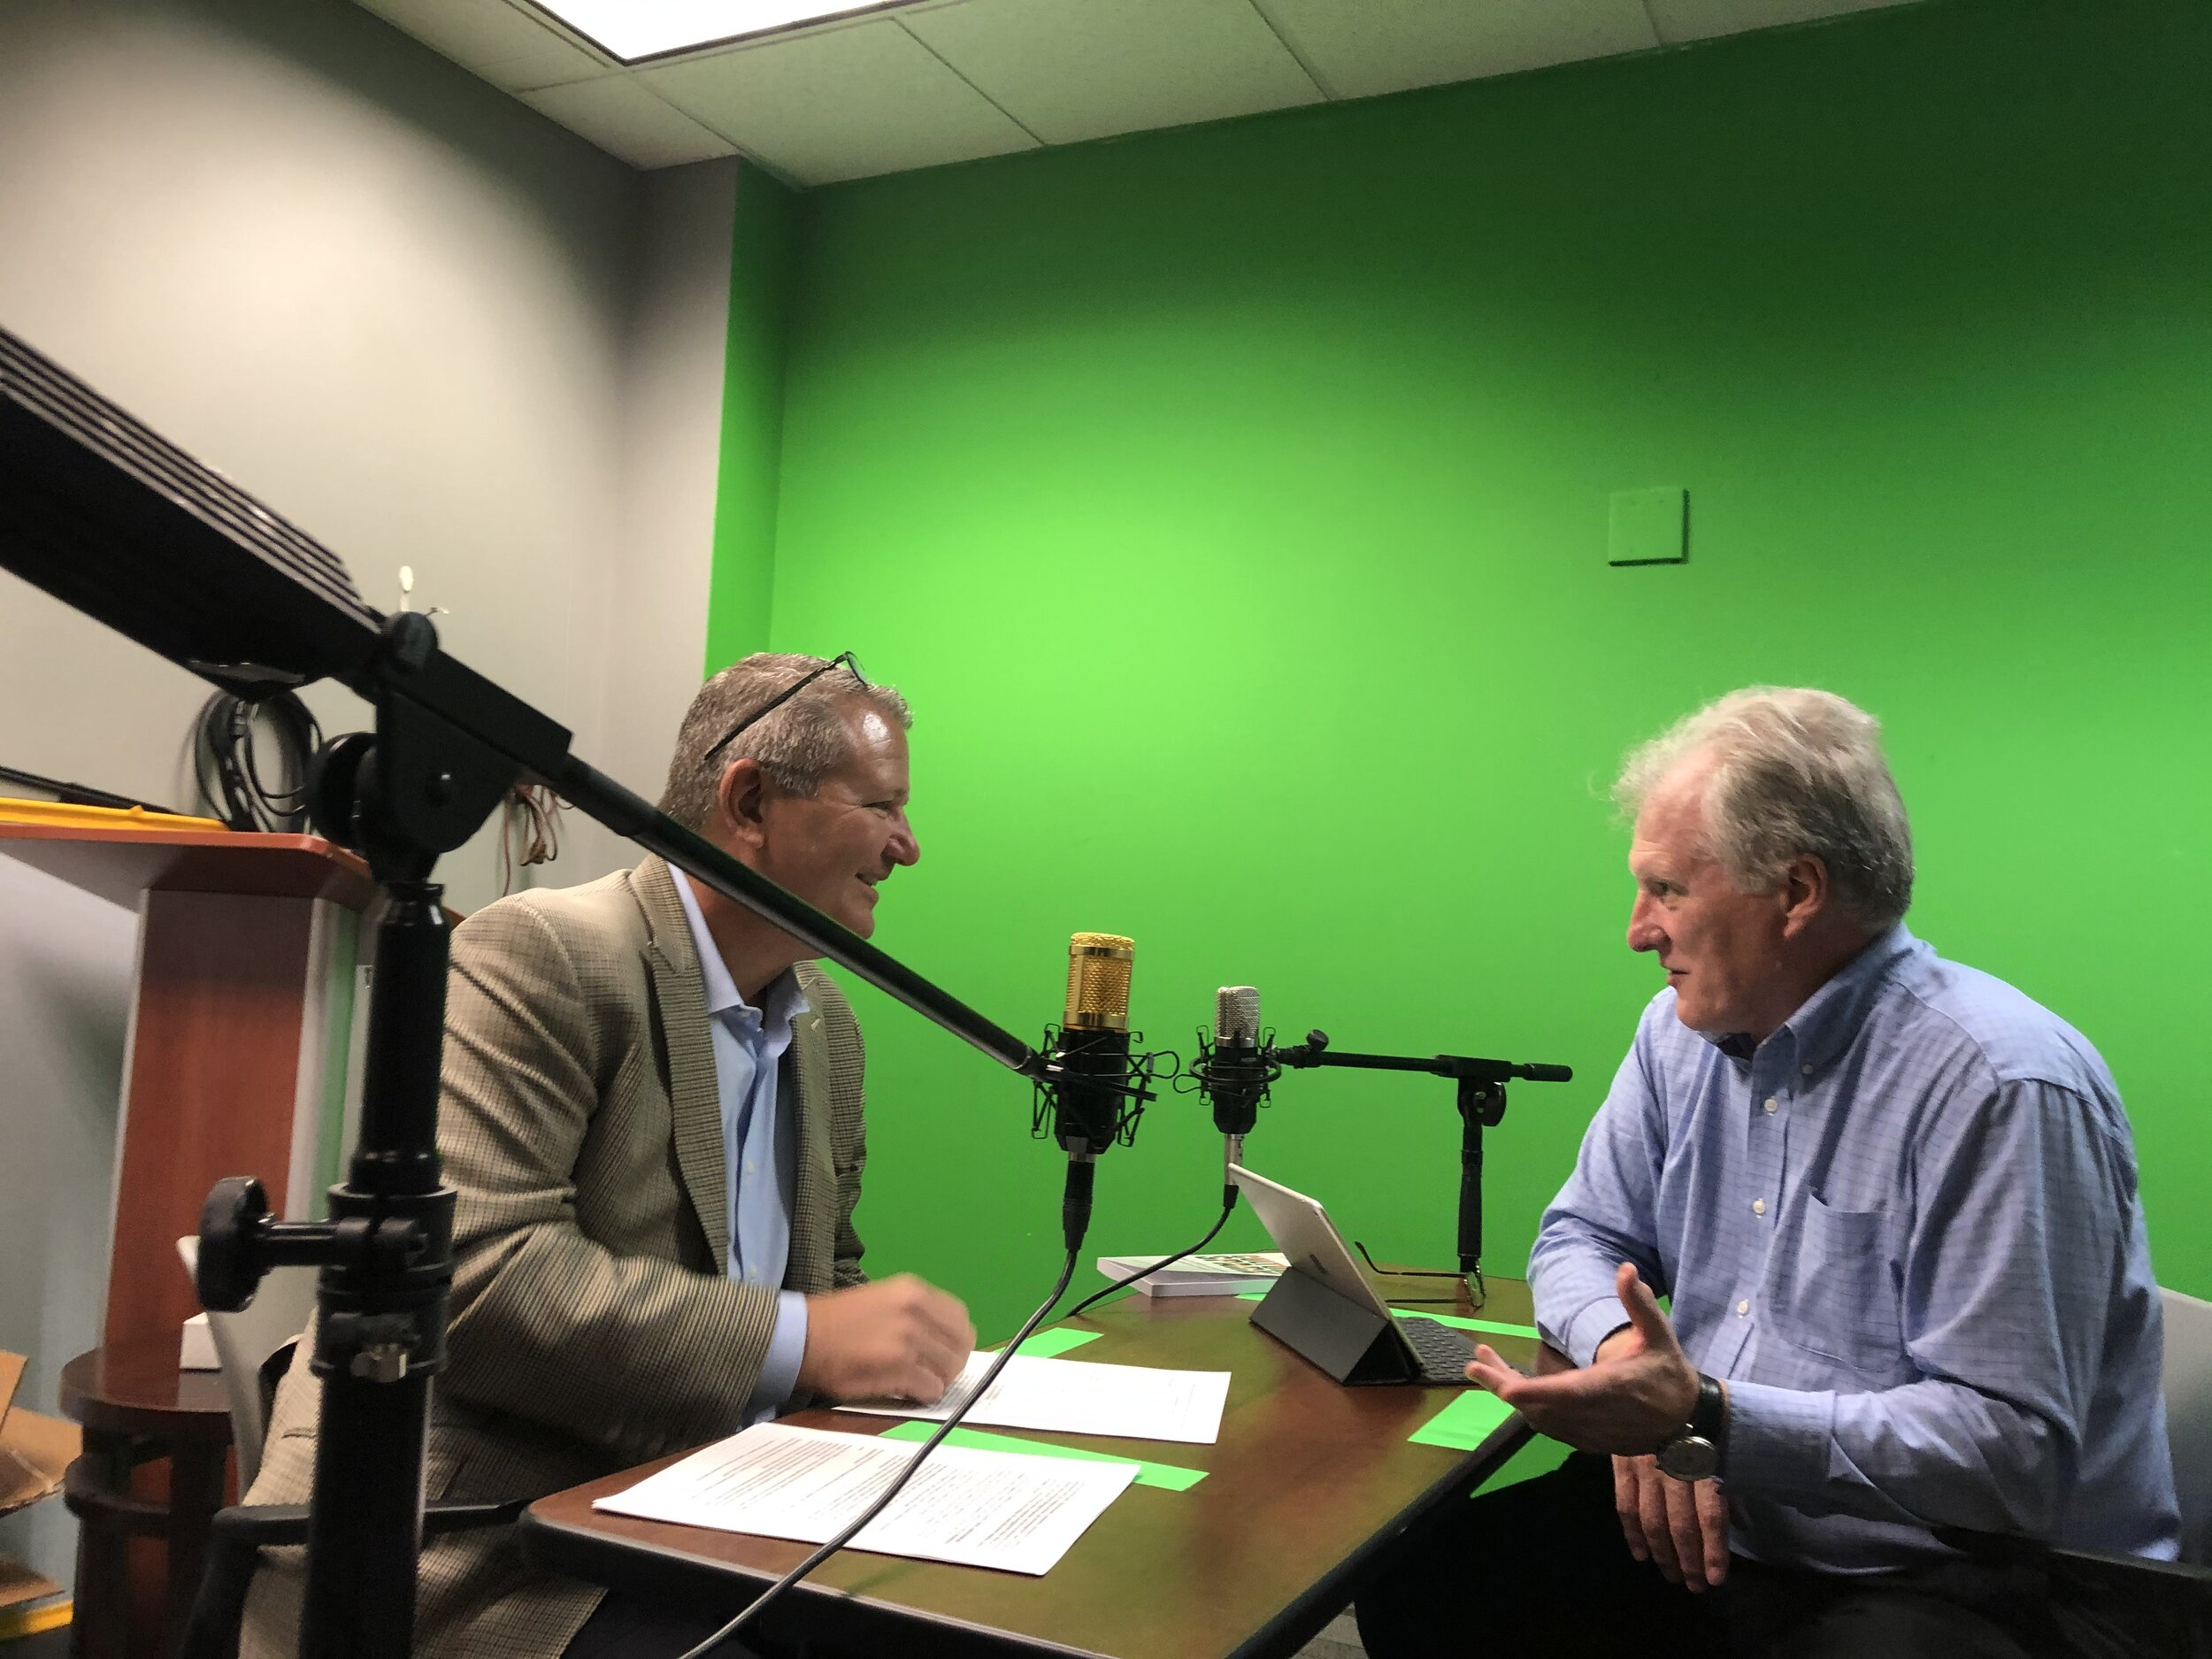 """Stephen Hart (right) interviews Jason Richmond for the Learning Aloud podcast at Organizational Dynamics recorded at the University of Pennsylvania's campus studio. """"A wonderful conversation,"""" said Steve, Senior Consultant and Coach at The Professional Development Group and formerly VP, Human Resources, Federal Reserve Bank of Philadelphia."""